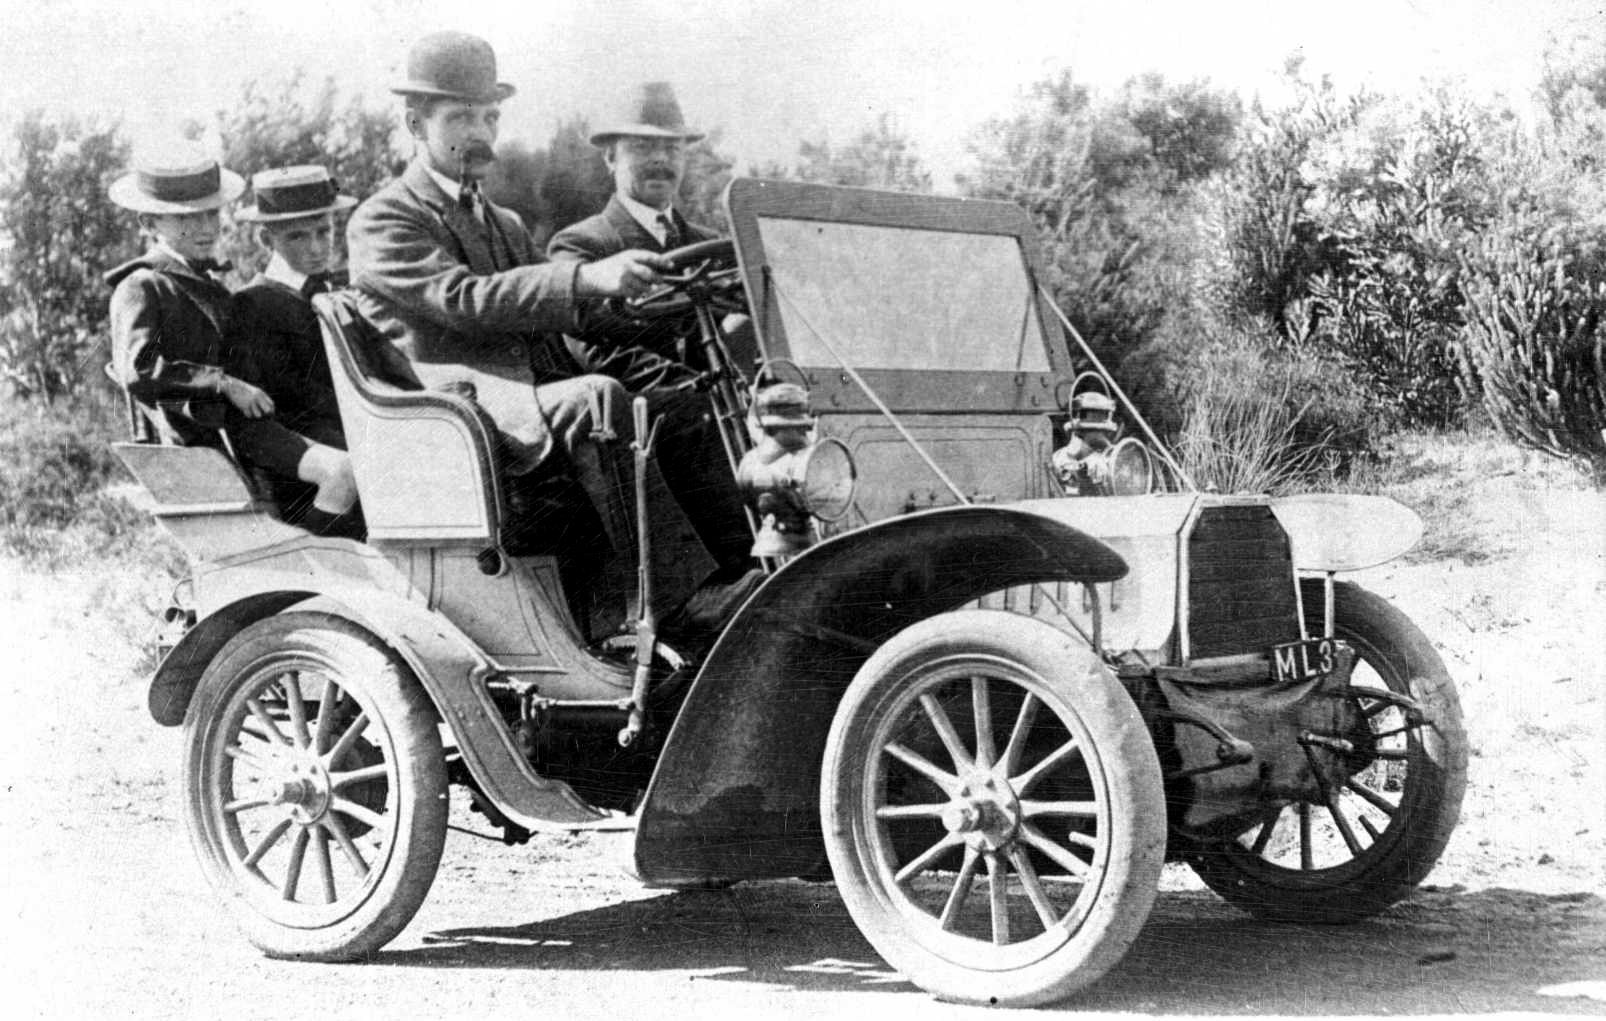 773cc single-cylinder 6 point 5hp 1904 HUMBERETTE, Maylands c1915